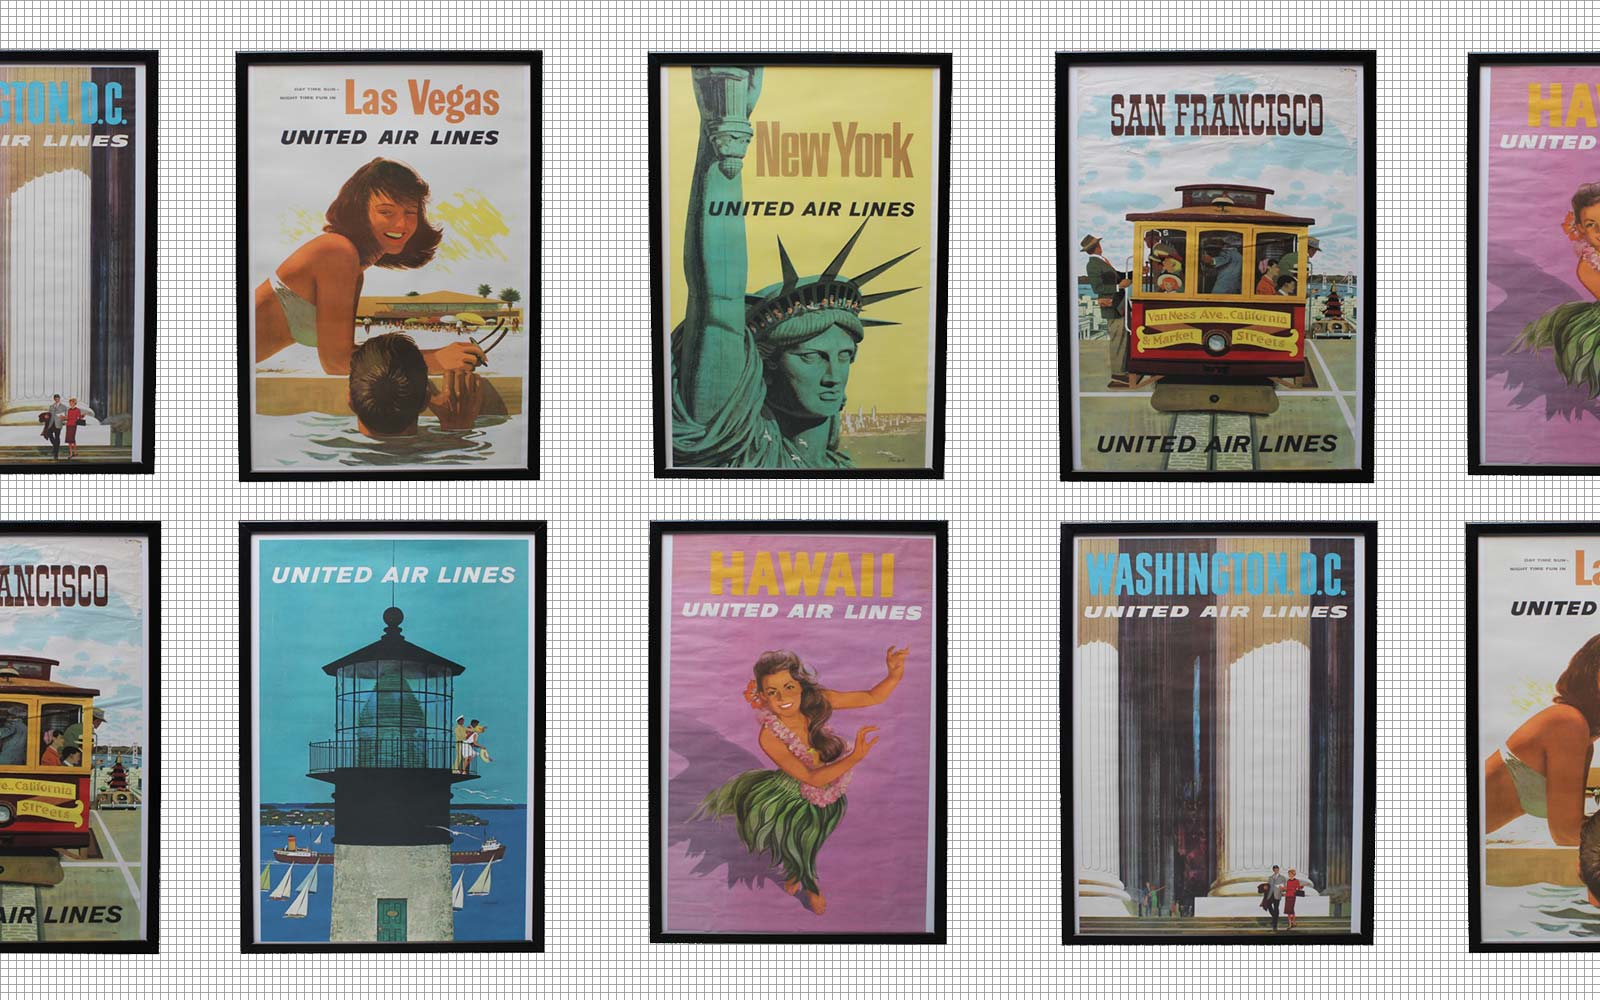 Travel Back in Time With These Stunning Travel Posters